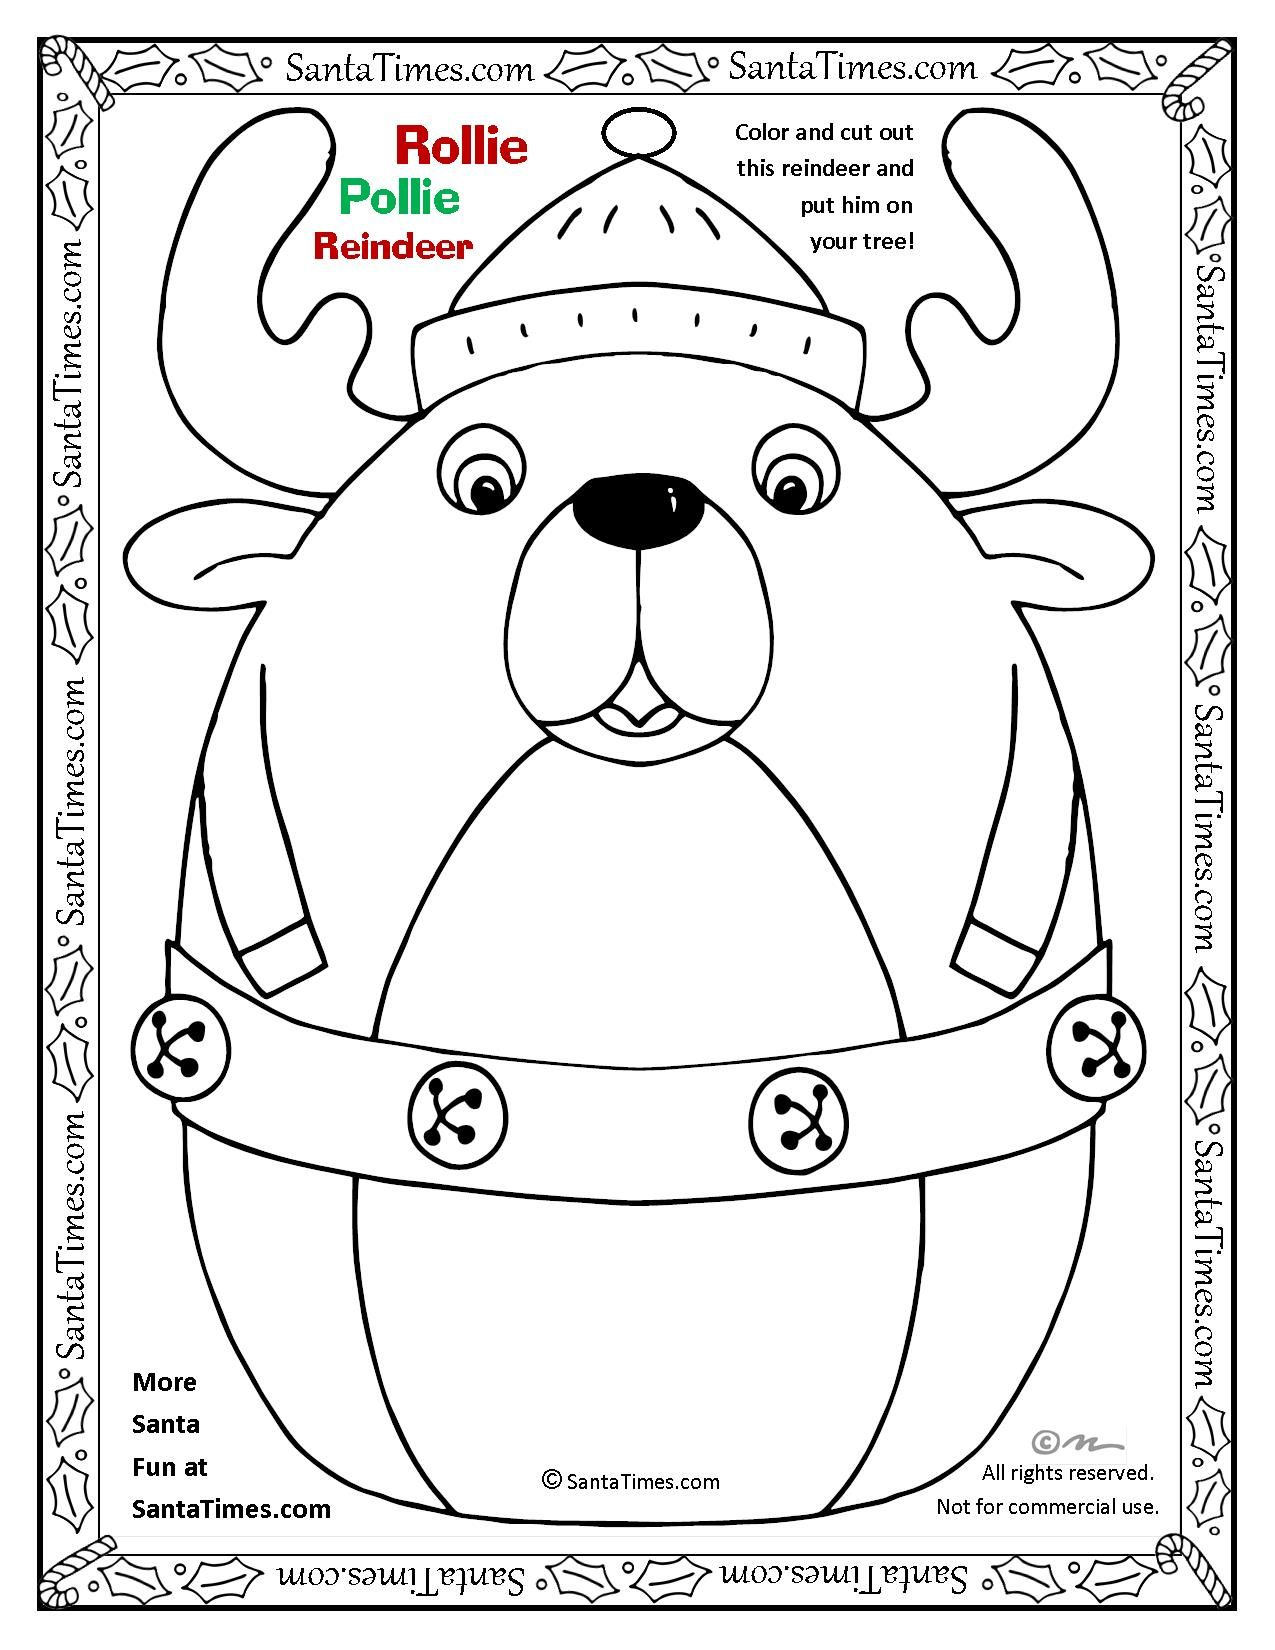 Rollie Pollie Santa Coloring Page Printout. More fun holiday ...